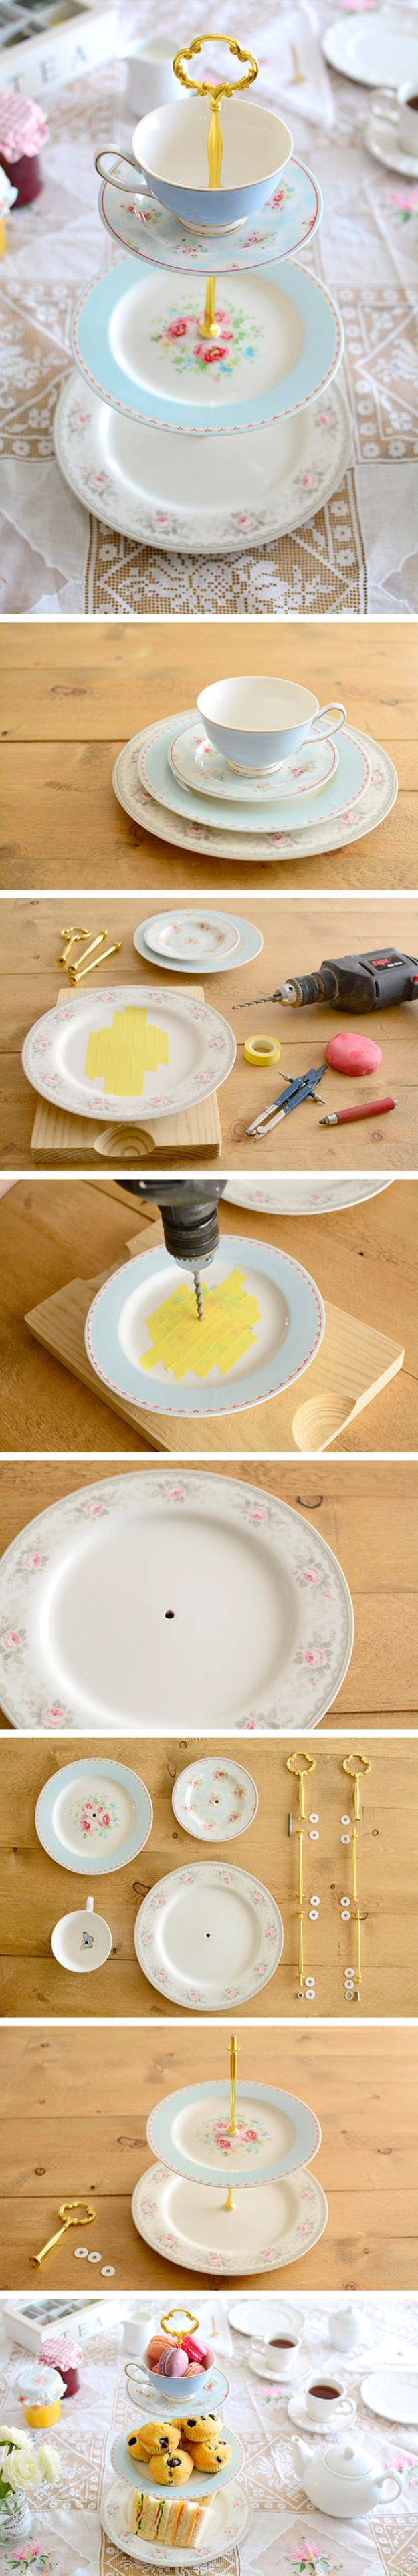 DIY Projects With Old Plates and Dishes - DIY Cake Stand - Creative Home Decor for Rustic, Vintage and Farmhouse Looks. Upcycle With These Best Crafts and Project Tutorials #diy #kitchen #crafts